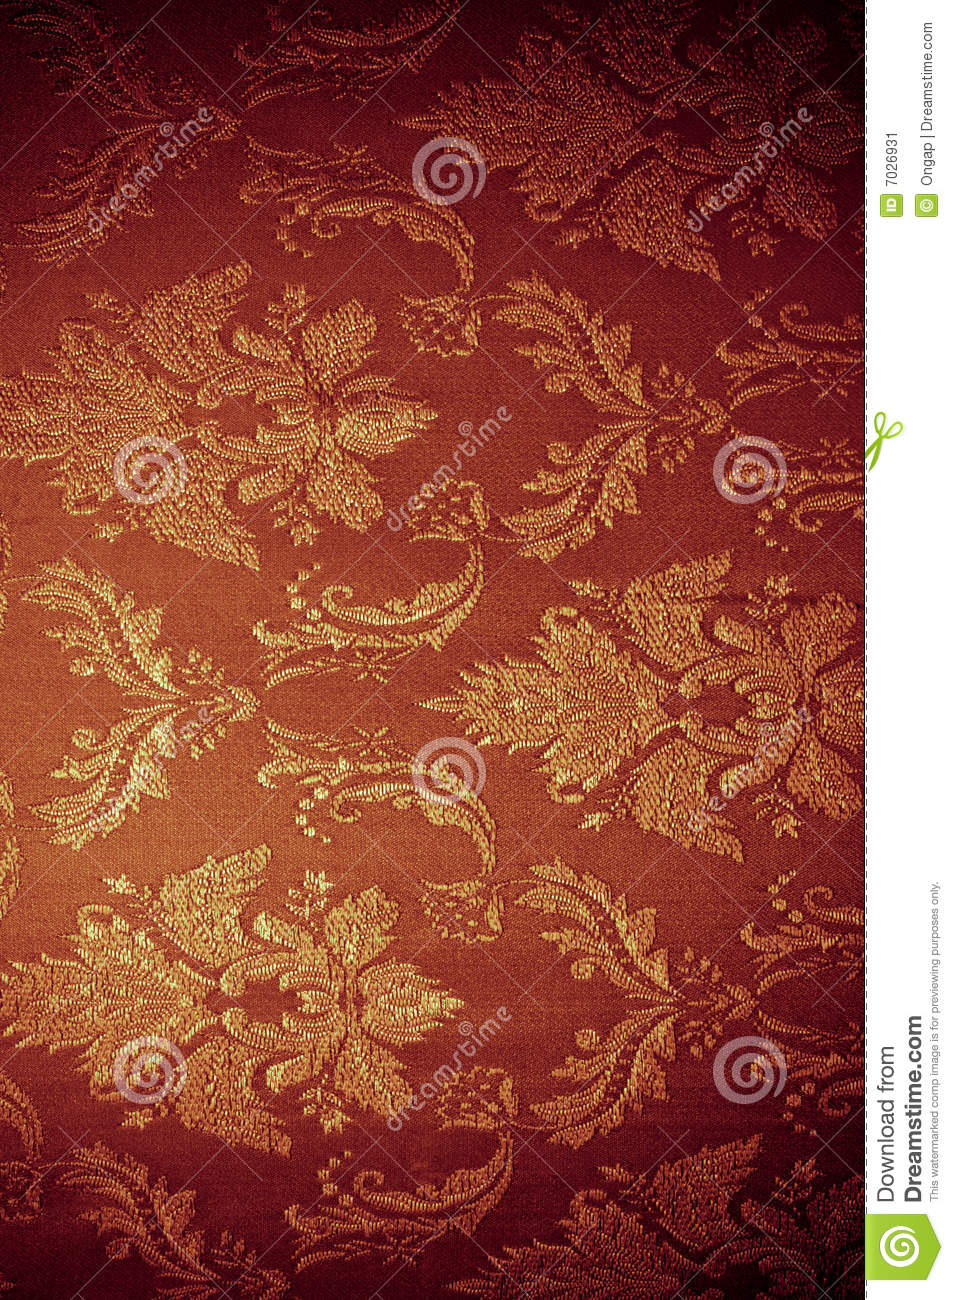 Old-fashioned Wallpaper Stock Image